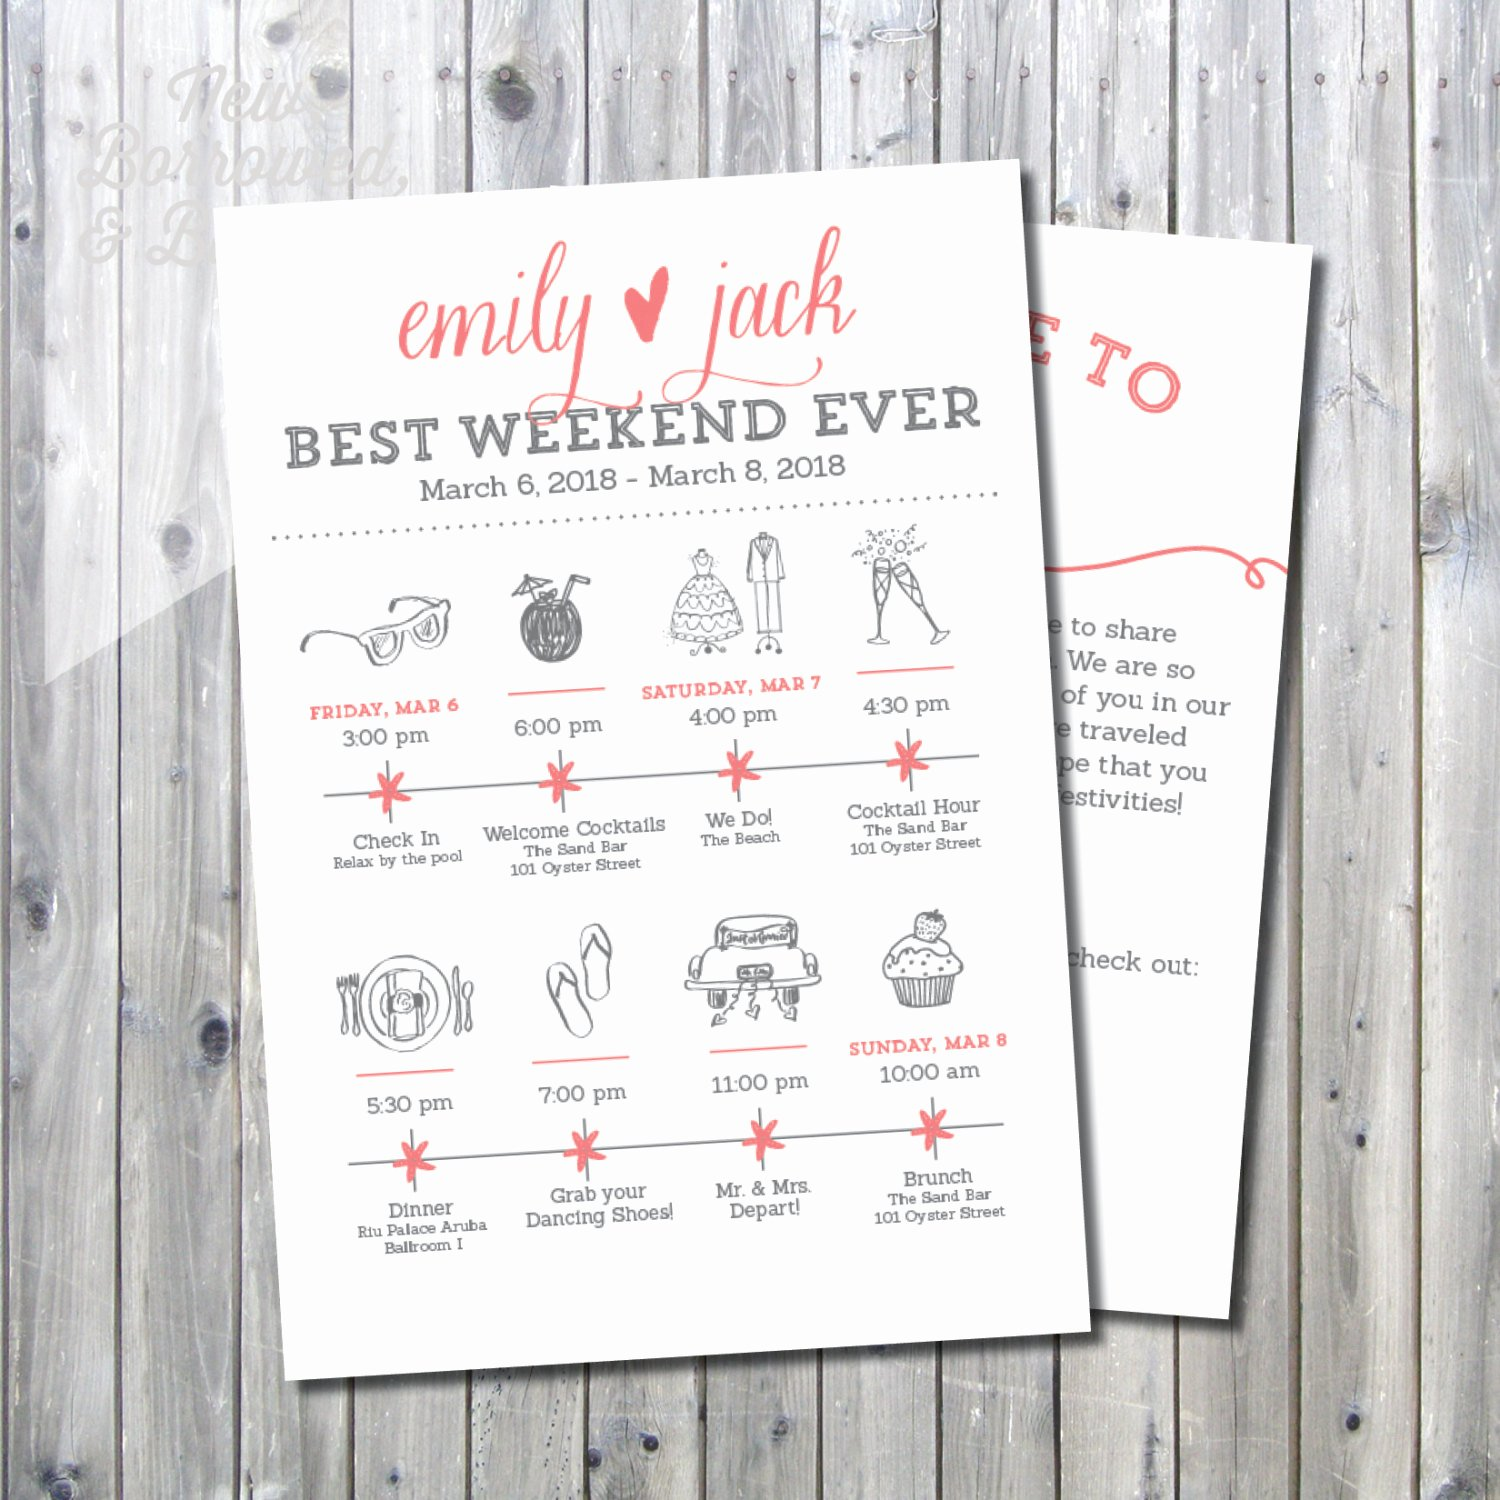 Wedding Welcome Bag Itinerary Template Fresh Printable Destination Wedding Icon Itinerary with Wel E